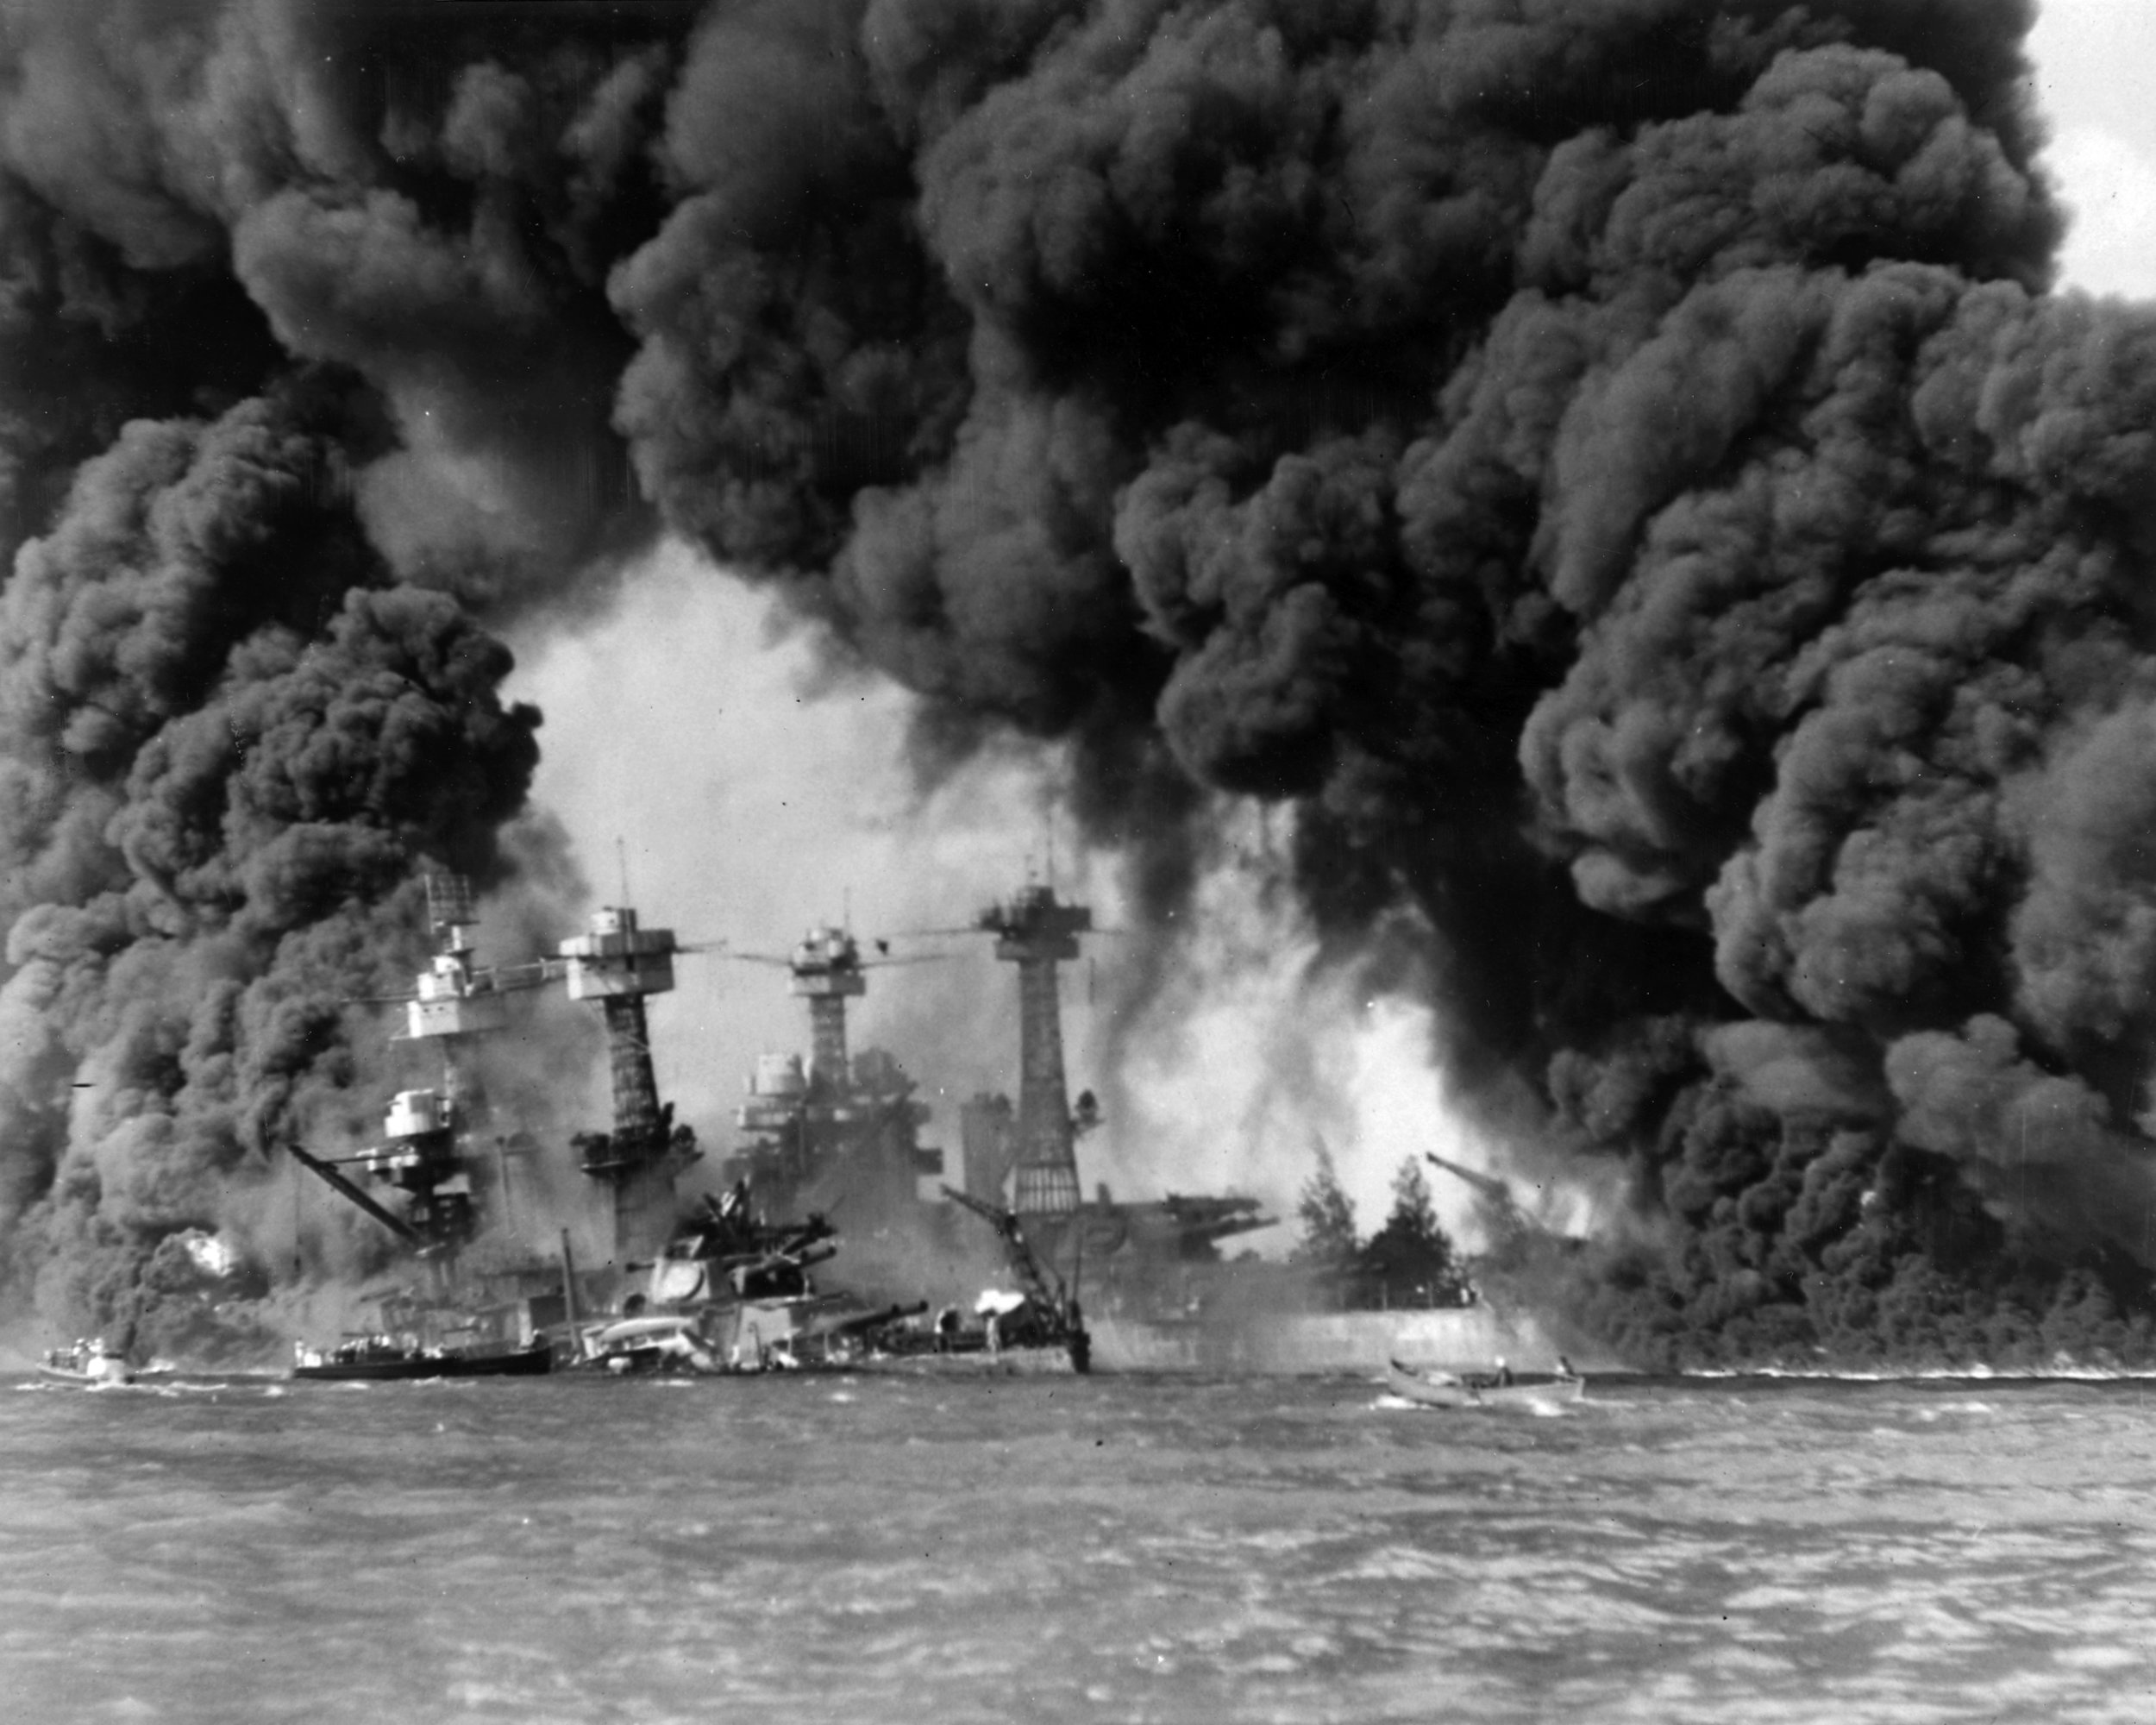 Burning ships at Pearl Harbor, December 7, 1941